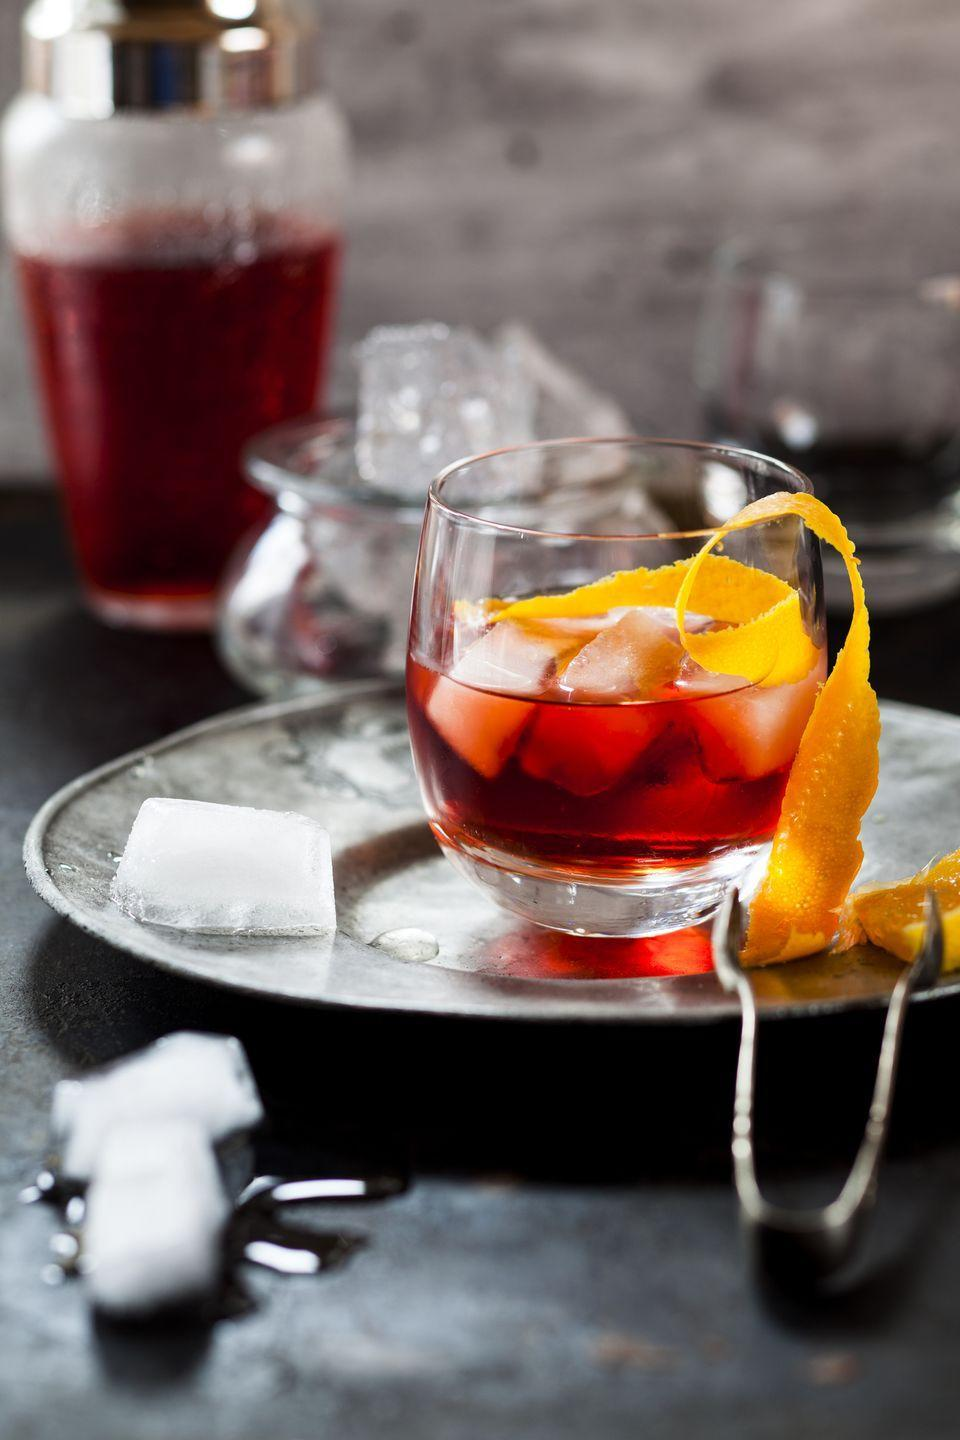 "<p>""In Mexico, mezcal makes you magical! It's the ancient gods' elixir and my personal favorite during the holidays with family, friends, and — with this Negroni, lots of laughter."" – <a href=""http://olgahanono.com/"" rel=""nofollow noopener"" target=""_blank"" data-ylk=""slk:Olga Hanono"" class=""link rapid-noclick-resp"">Olga Hanono</a>.</p><p><strong>Olga's Negroni Recipe</strong><br></p><p><strong>Ingredients:</strong><br>1 ounce mezcal Montelobos Espadin</p><p>1 ounce Ancho Reyes</p><p>1 ounce Campari</p><p>Orange slice, for garnish</p><p>Cinnamon stick, for garnish</p><p><strong>Directions:</strong><br>Stir together mezcal, Ancho Reyes, and Campari. Serve over ice in a rocks glass. Garnish with an orange slice and cinnamon stick. <br><br></p>"